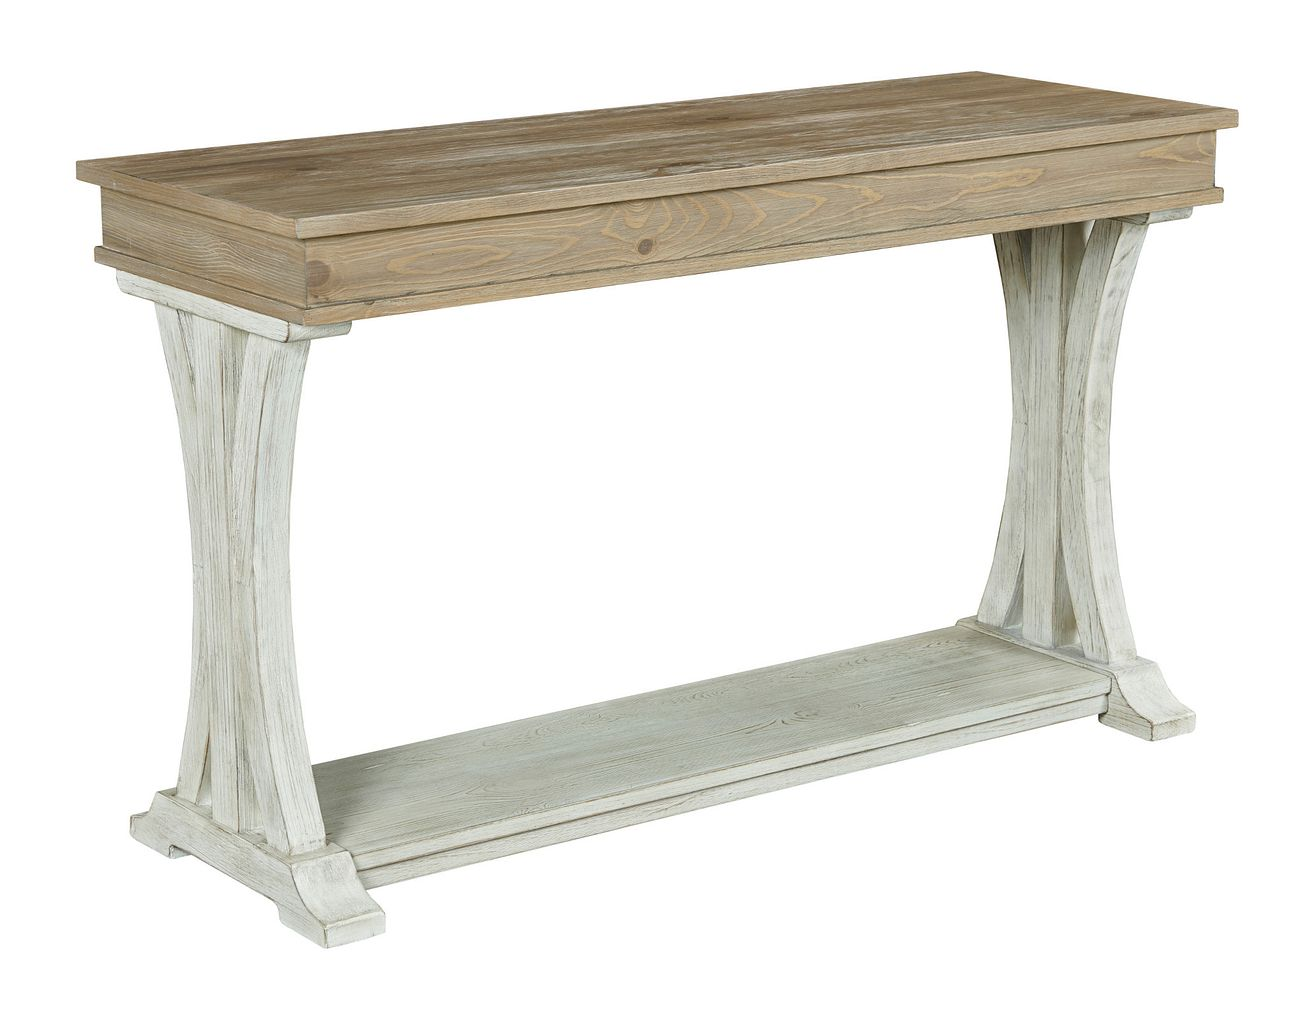 Cimarron Valley Sofa Table by Hammary at Jordan's Home Furnishings